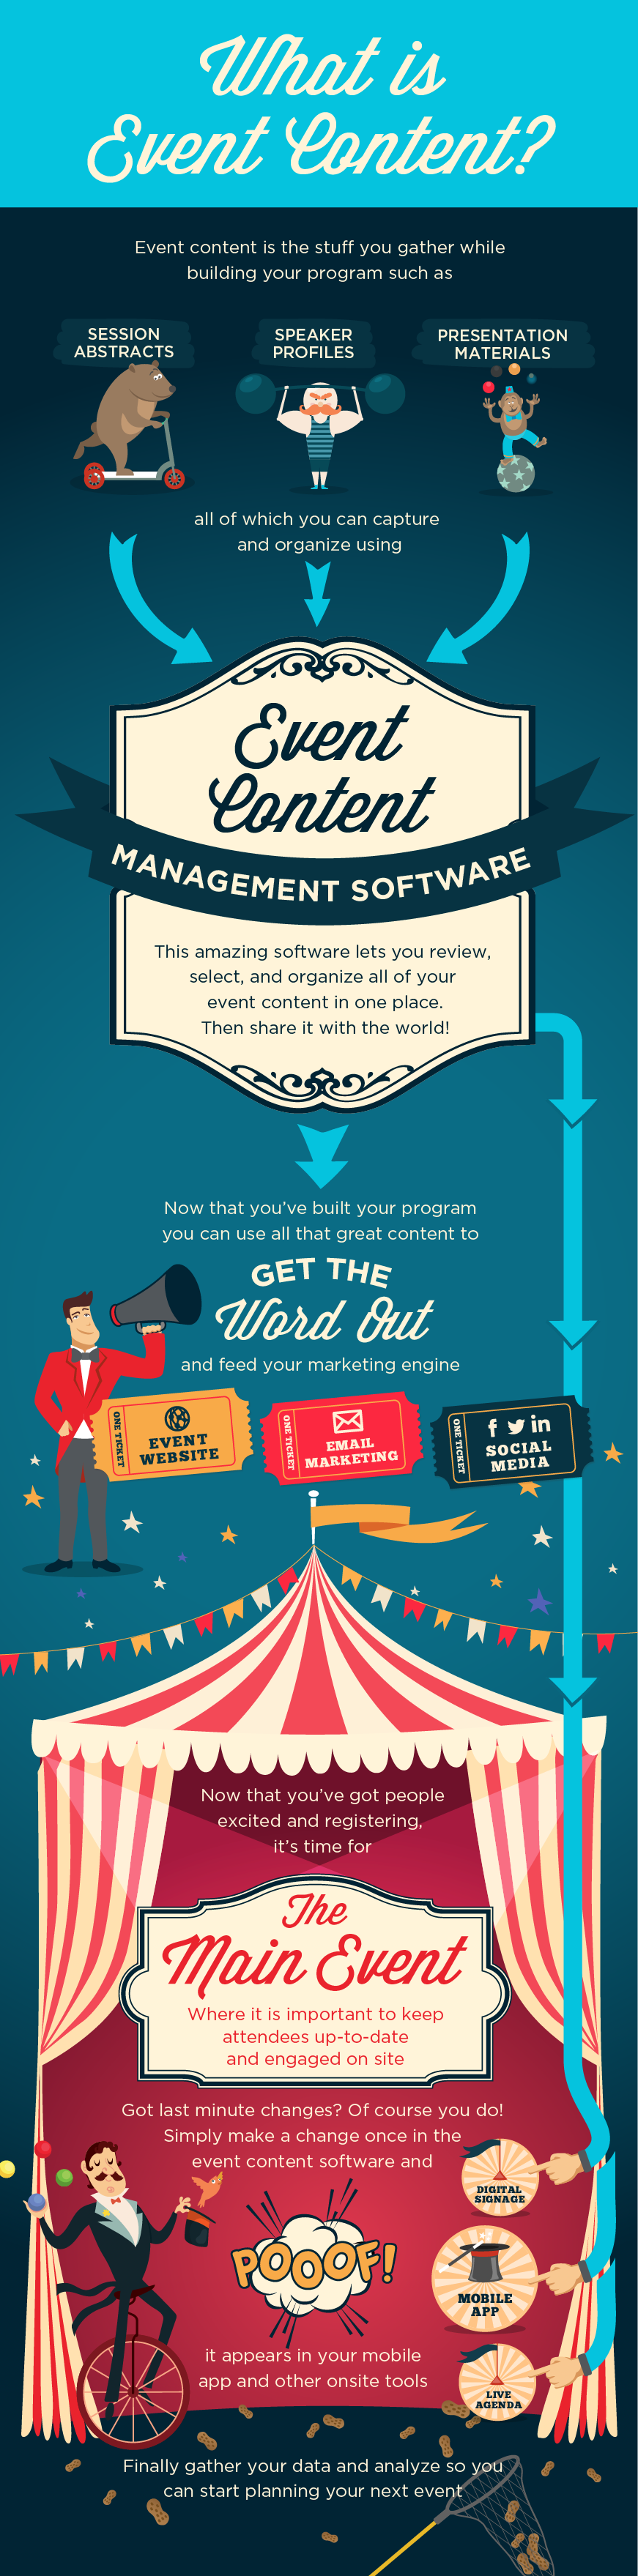 What-Is-EventContent-Infographic-r7.png